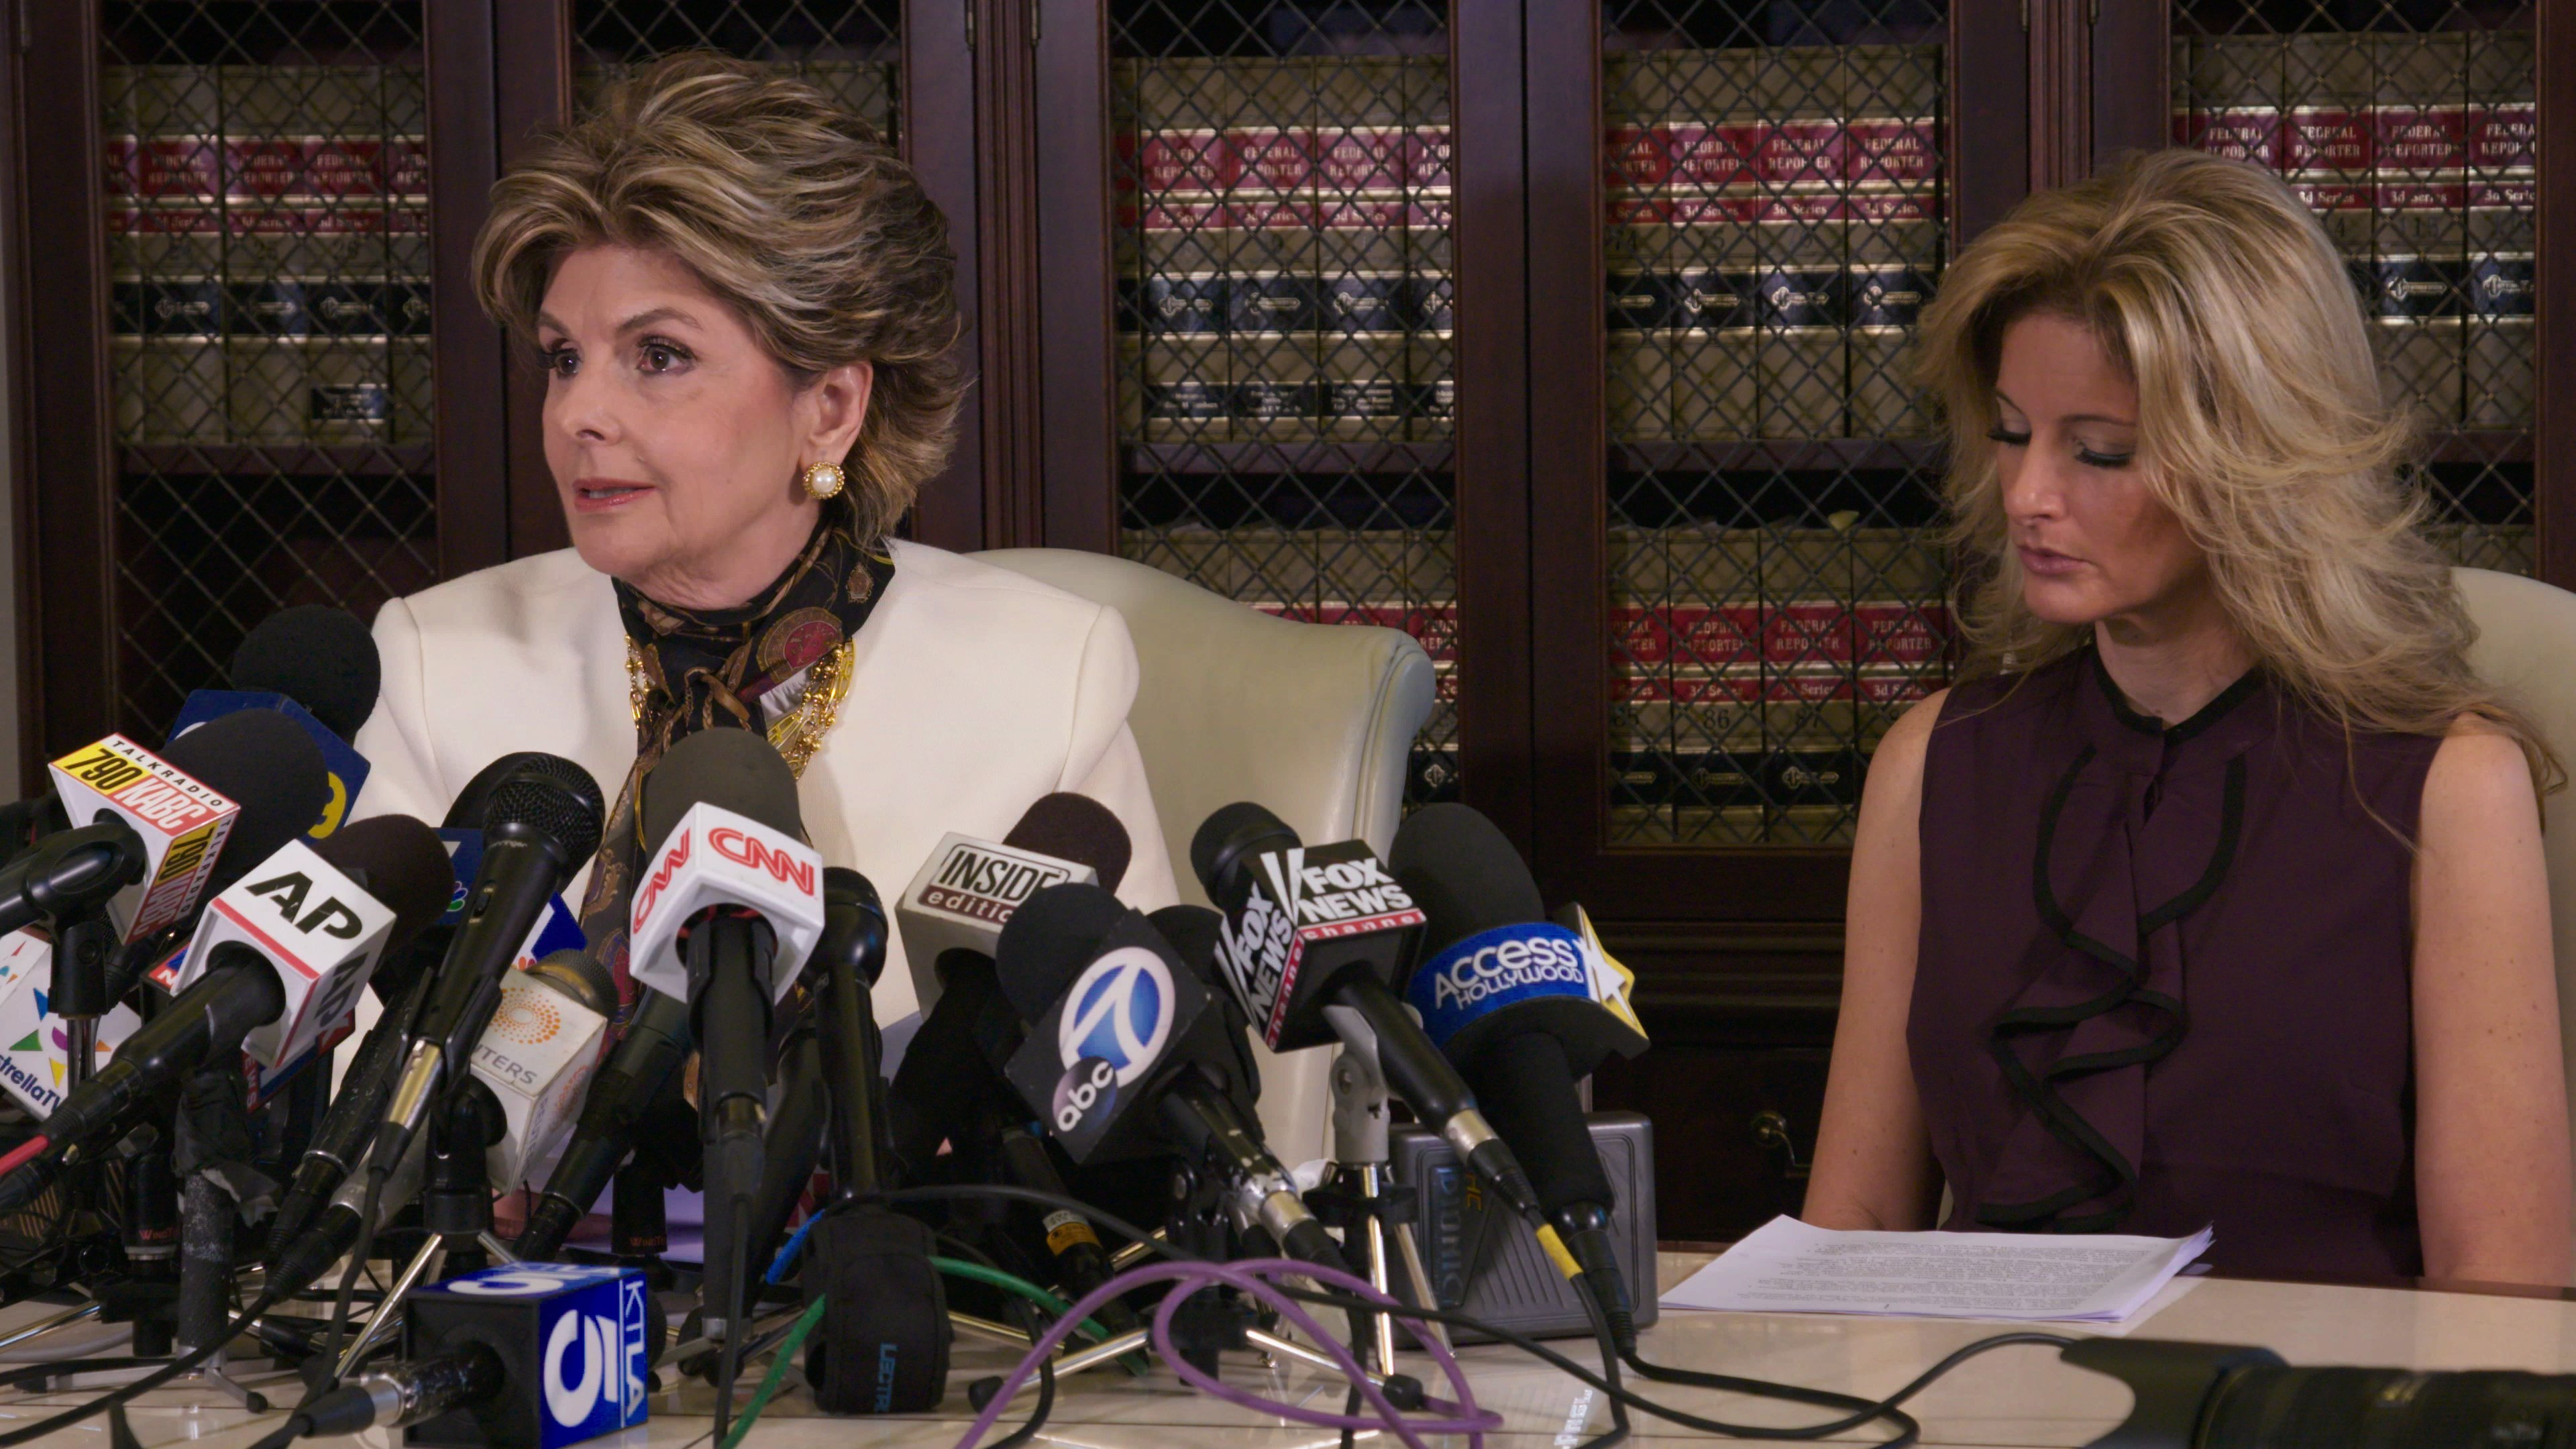 """Nobody will confuse """"Seeing Allred"""" with a hard-hitting expose; rather, this Netflix documentary unabashedly celebrates publicity-savvy attorney/advocate Gloria Allred, shedding some interesting light on her career, even if it's all flattering."""